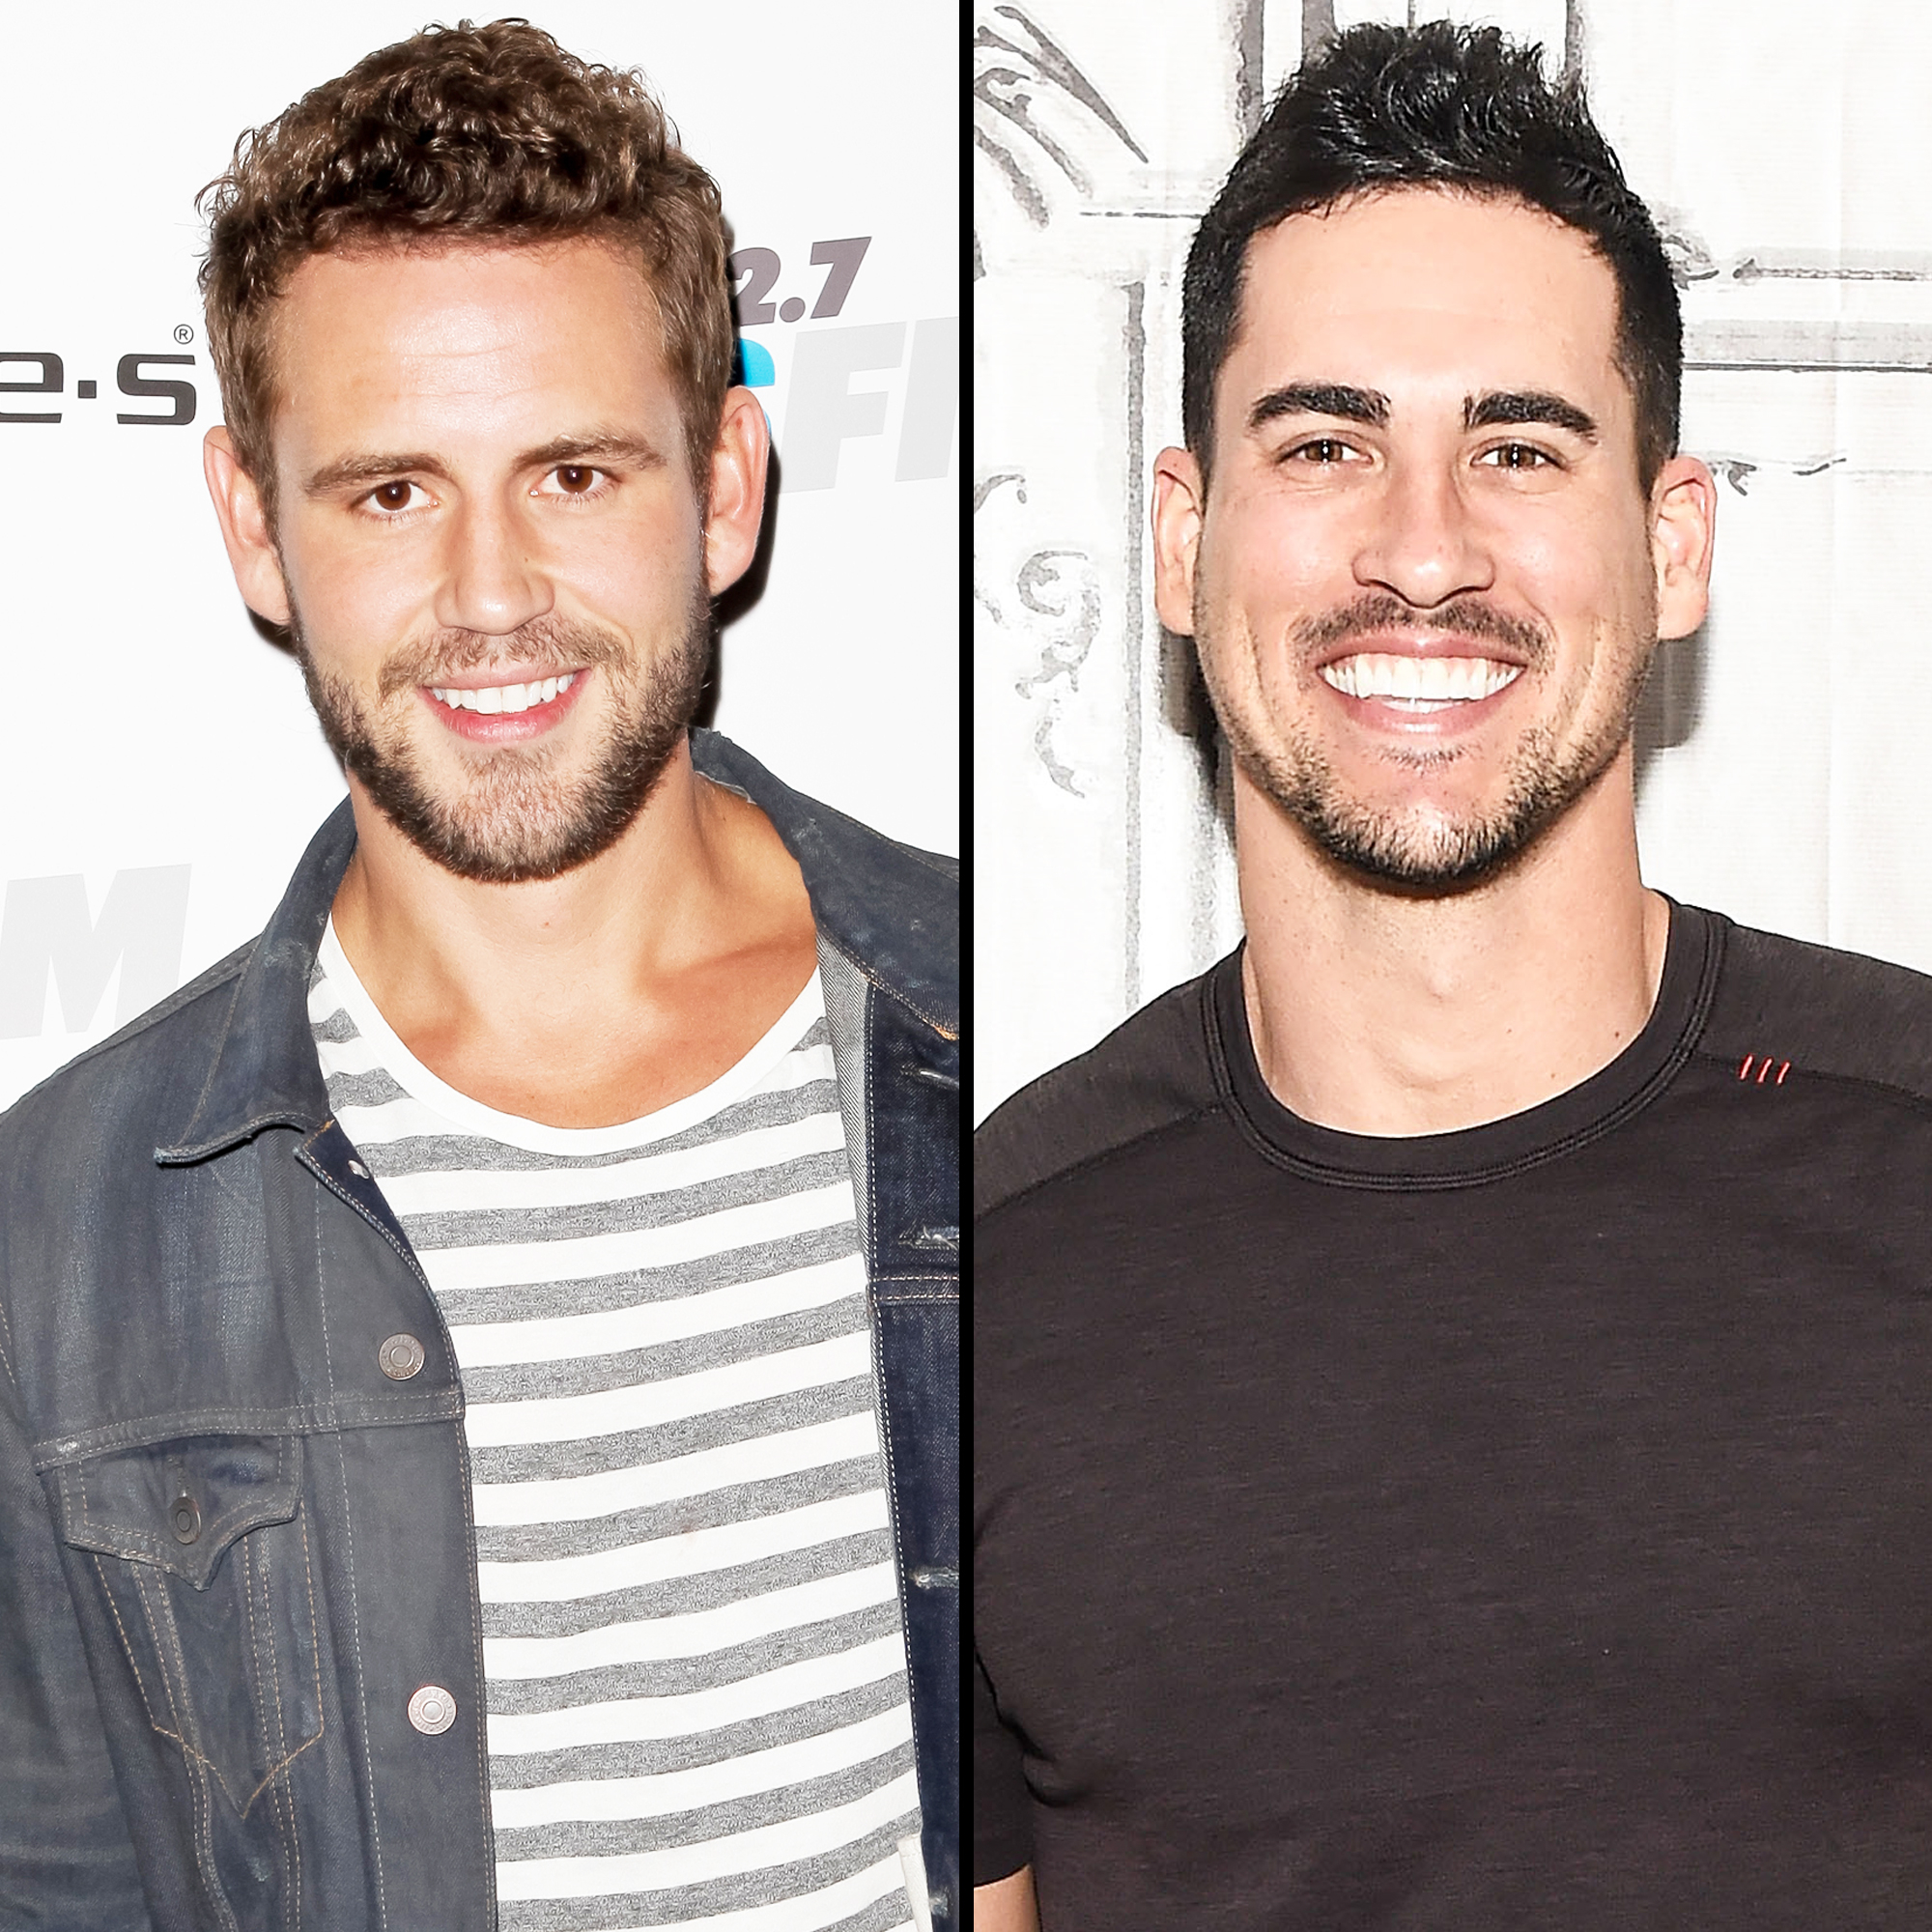 Nick Viall and Josh Murray